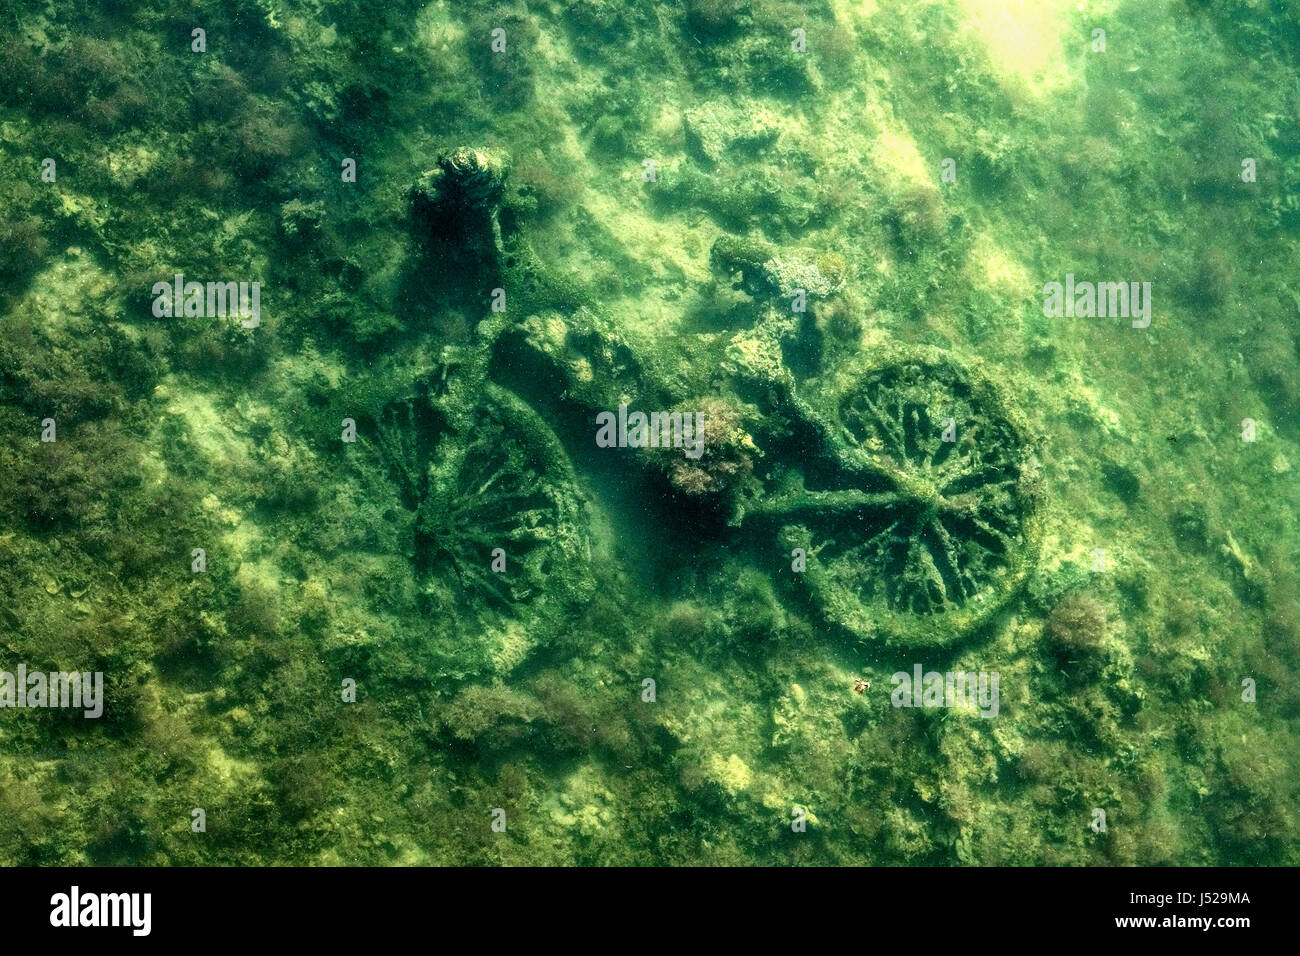 A bicycle that's been thrown into a local river and is slowly being covered in algae and underwater plant life - Stock Image